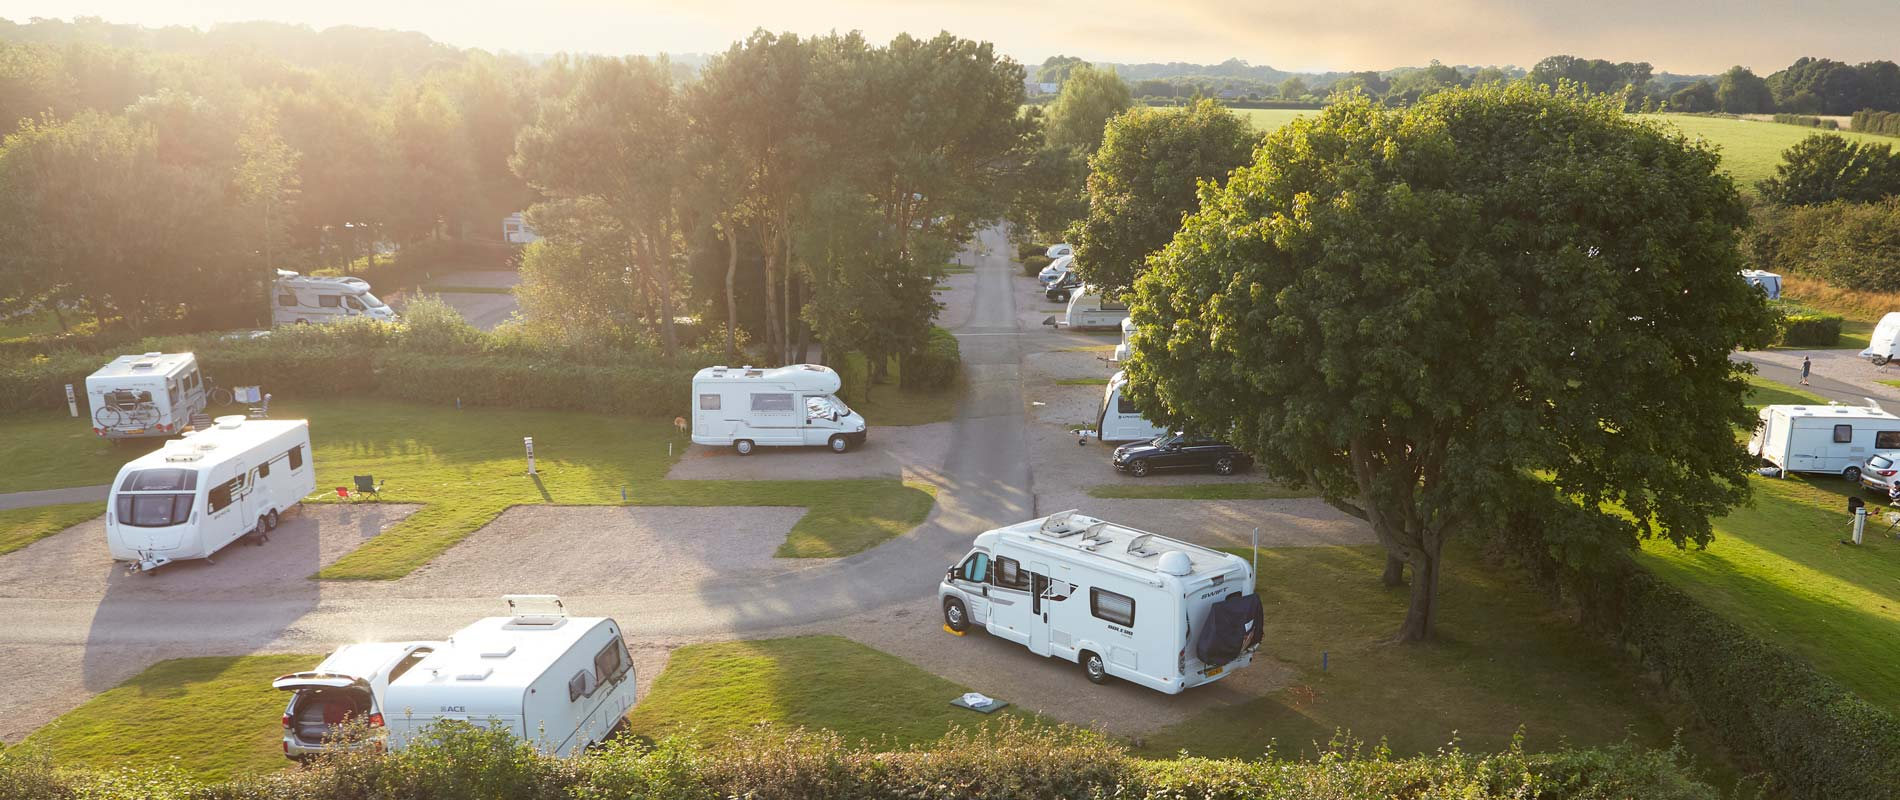 Caravans and motorhomes pitched up at Black Horse Farm Caravan and Motorhome Club Site